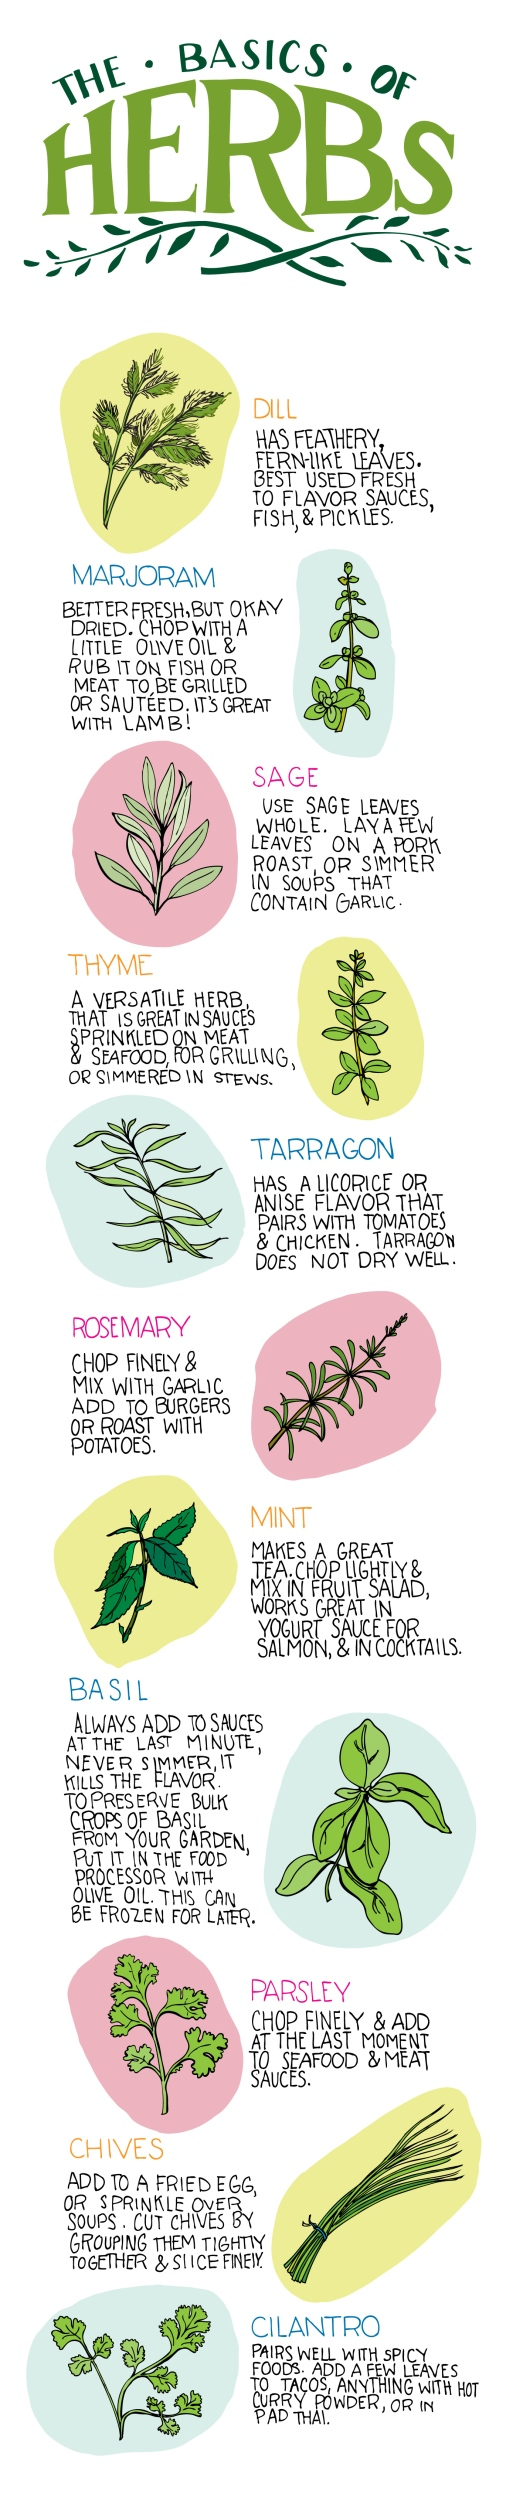 The Basics of Herbs [Illustration] | ecogreenlove